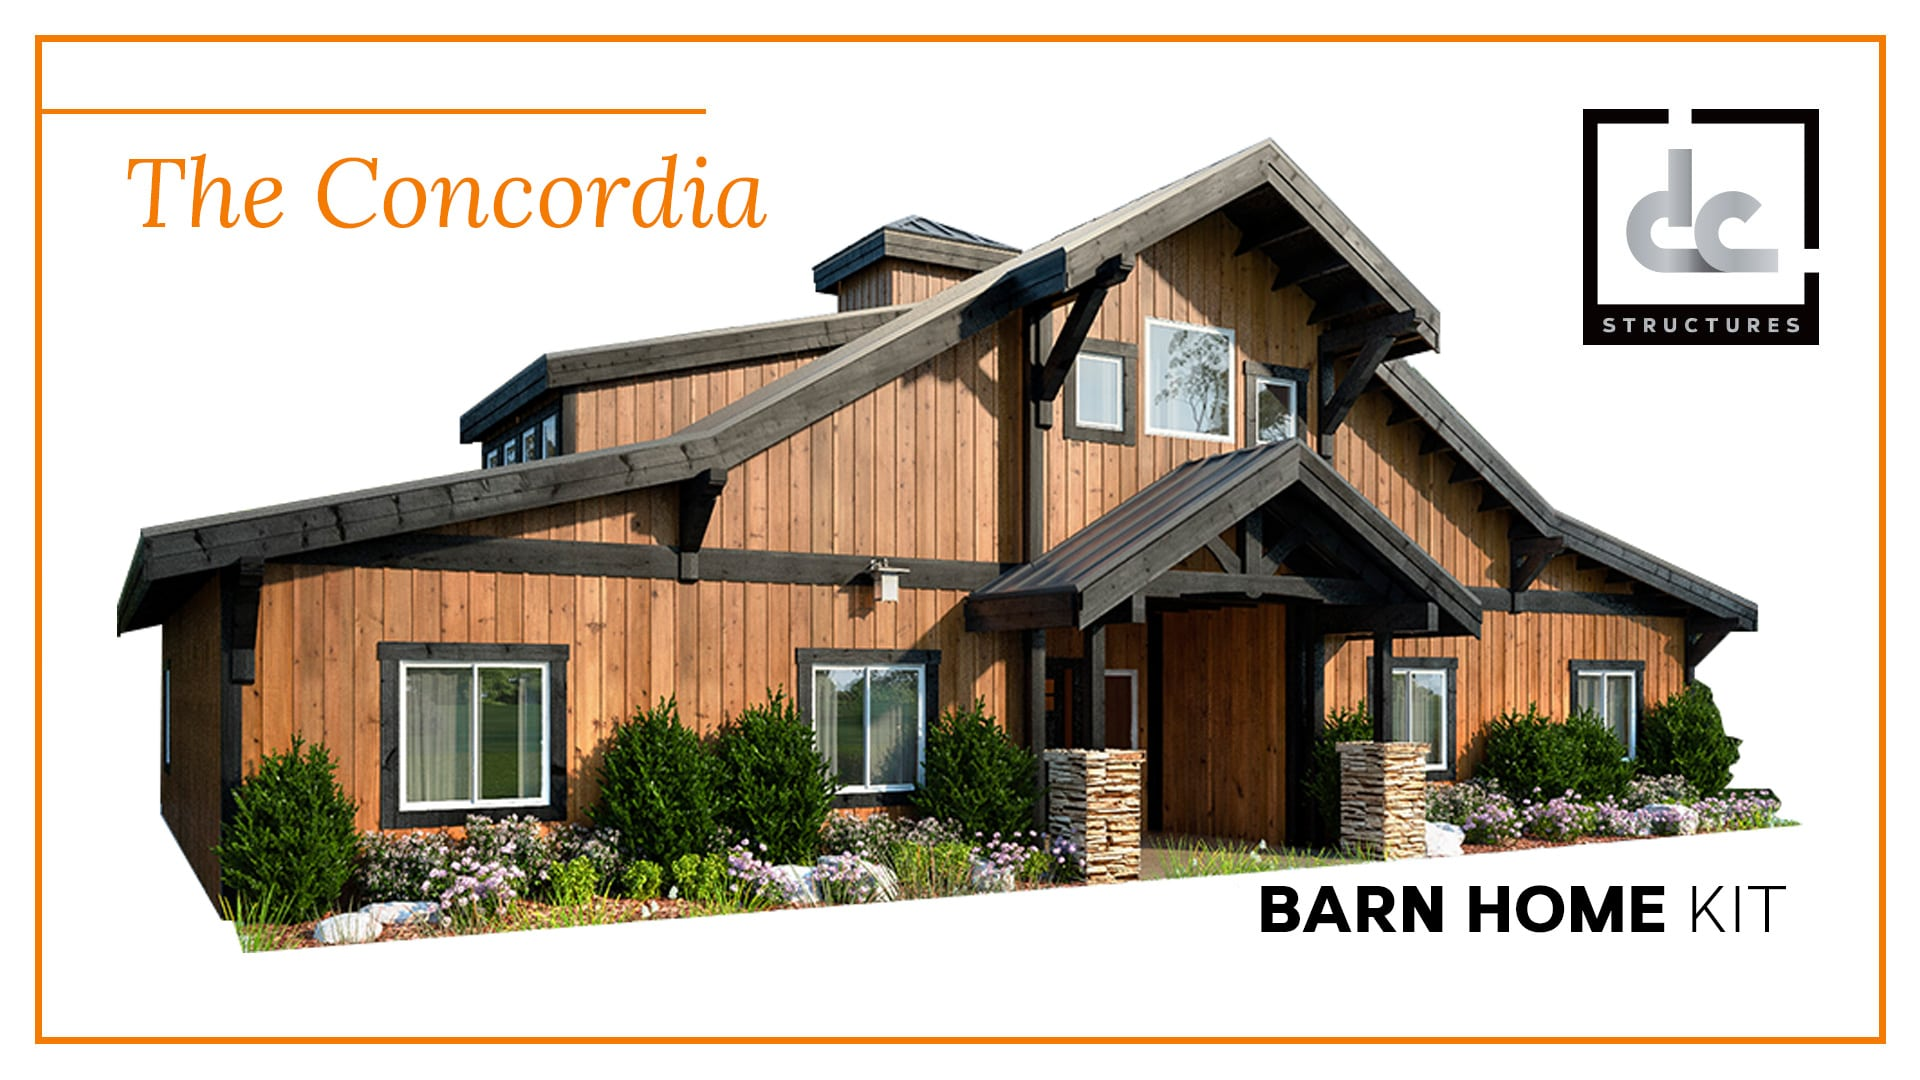 Barn home kits dc structures - American style mobel ...